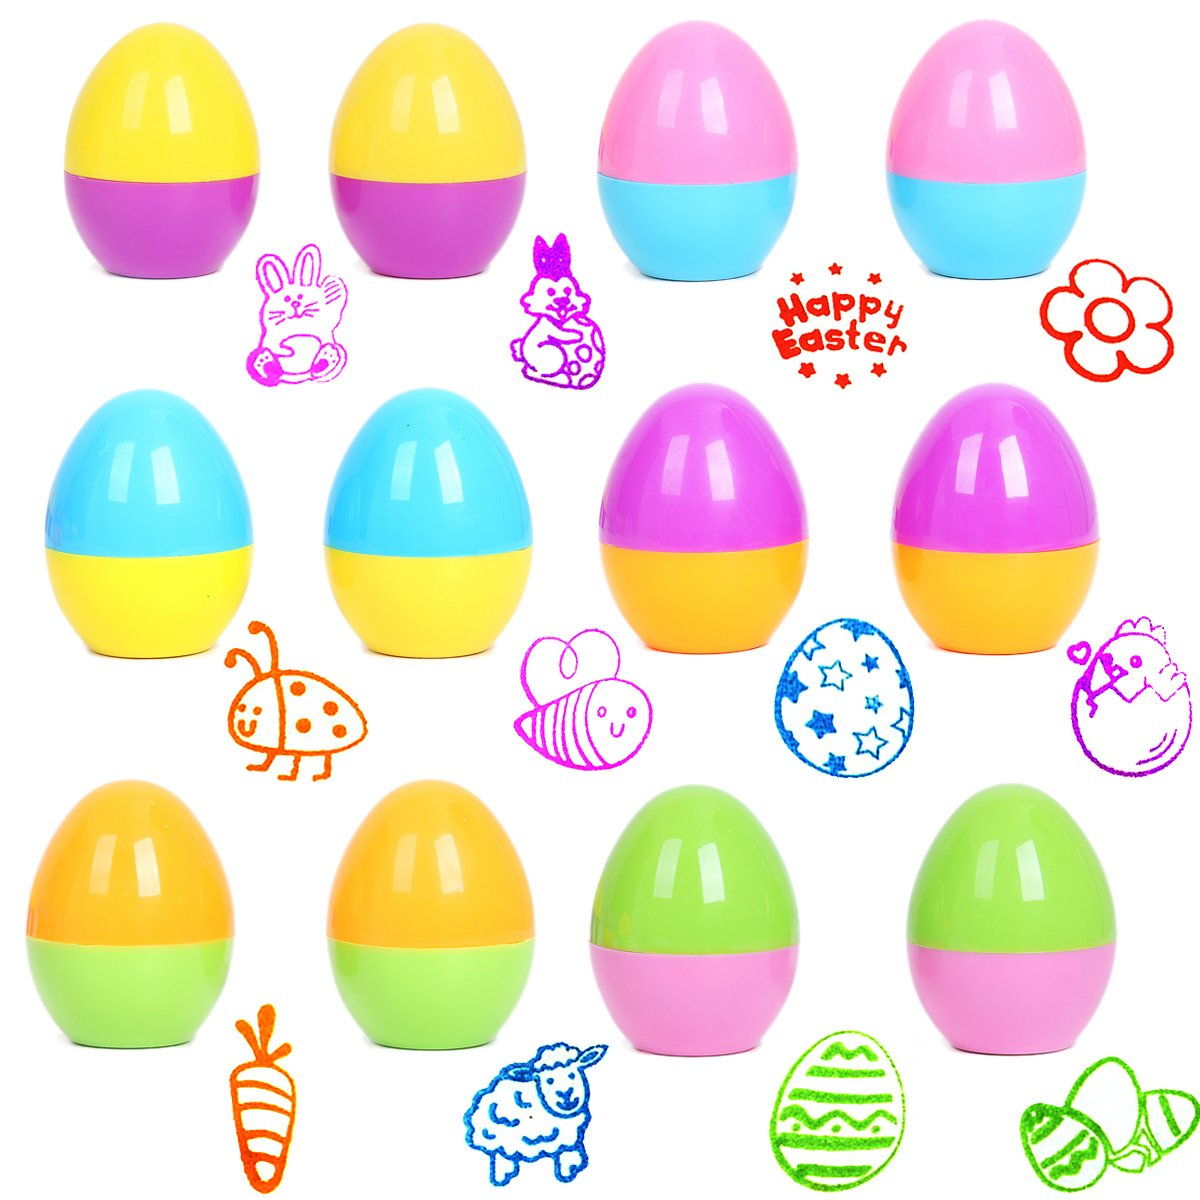 Cusfull 12 Pcs Easter Eggs Self-Inking Stampers Great for Easter Eggs Hunt Game, Theme Party, Kids Arts, Crafts, Paper Drawing Play